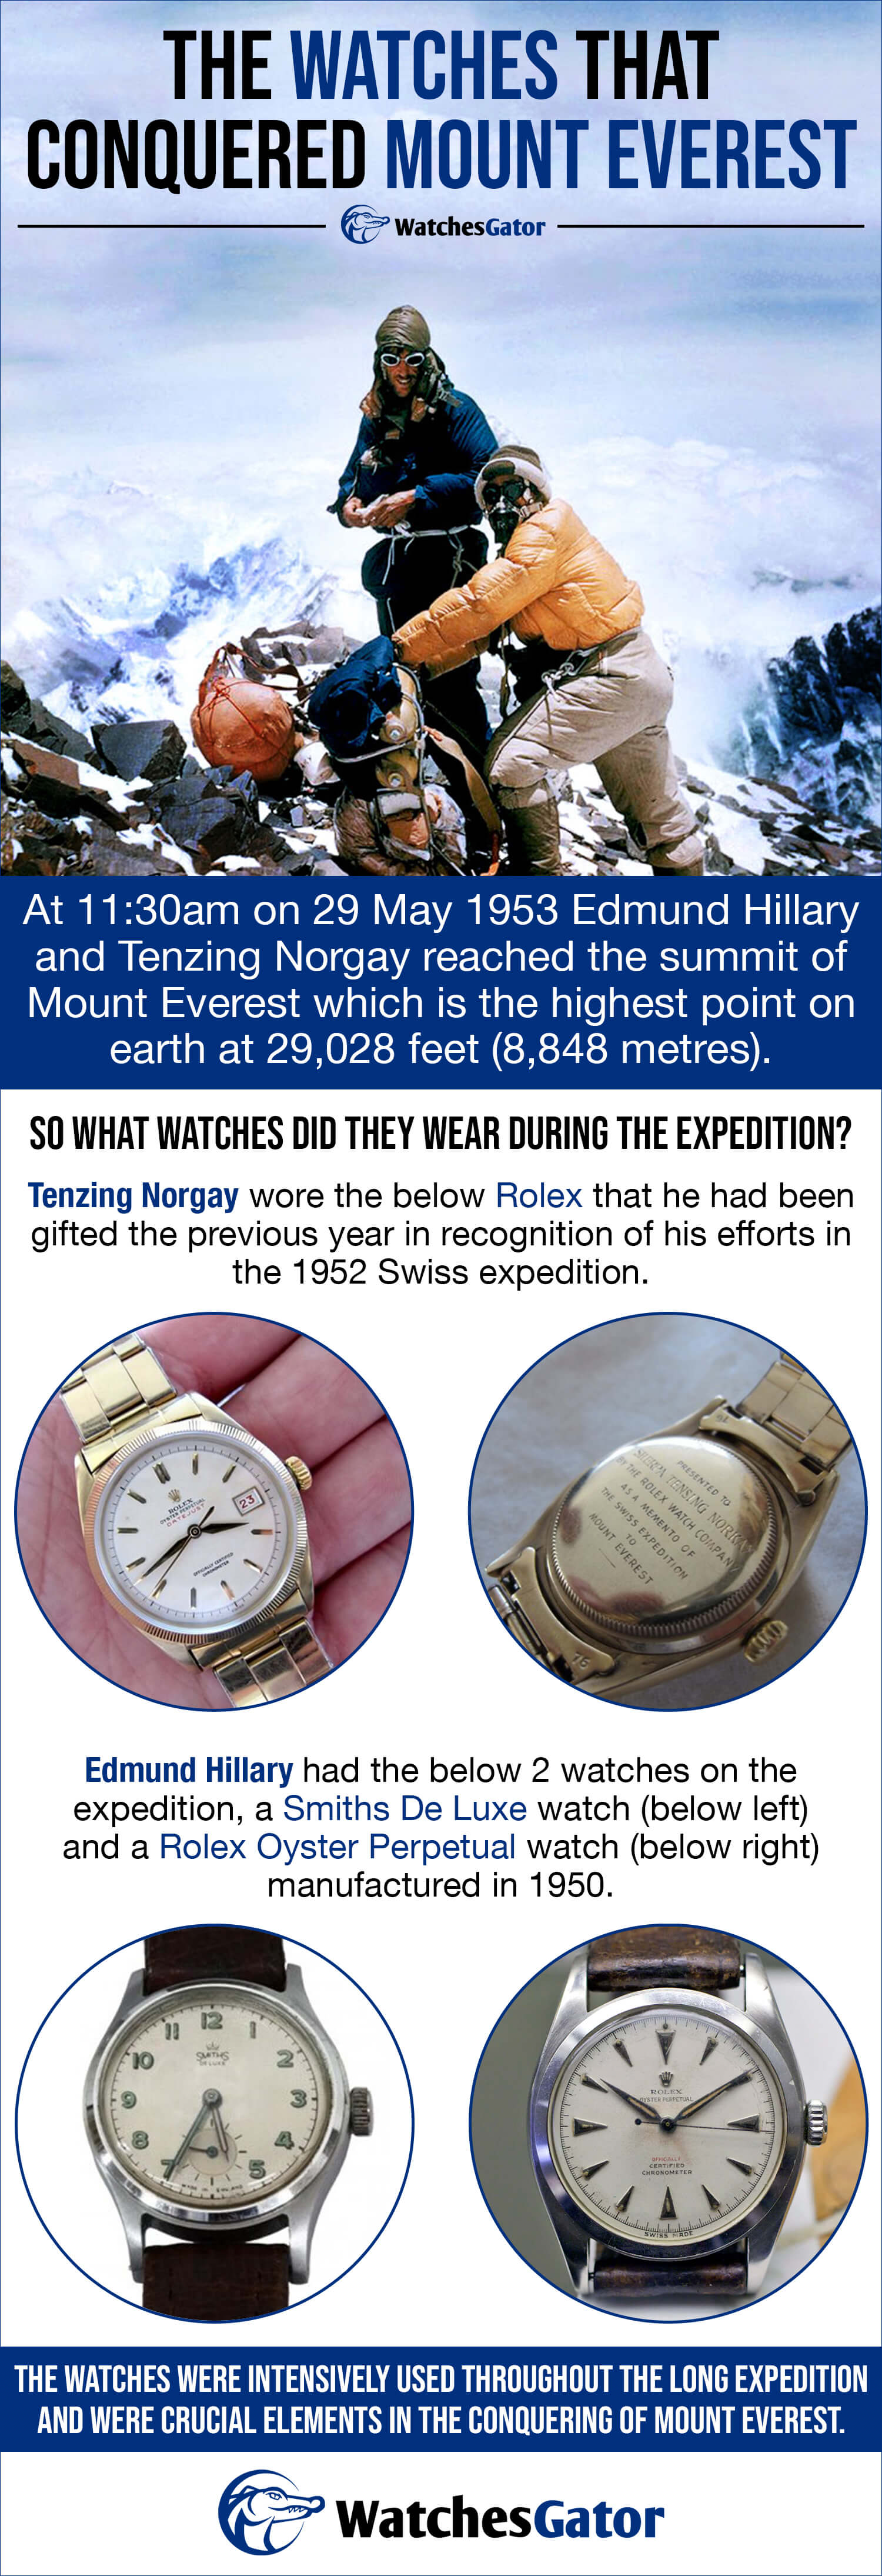 The Watches That Conquered Mount Everest